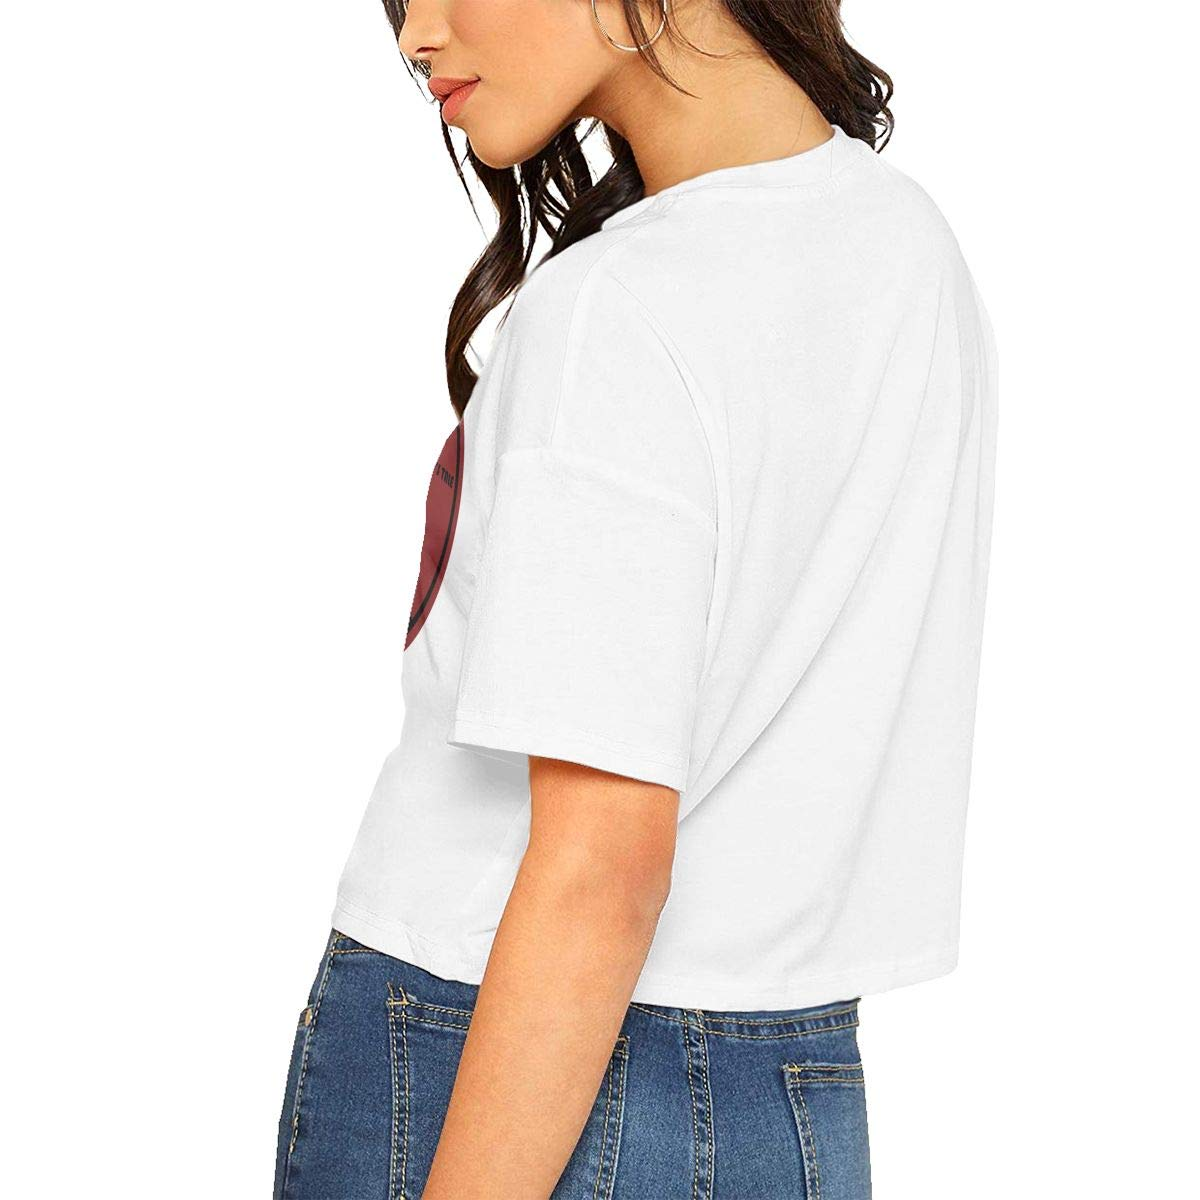 Qmad Womens Tale for Ruled Life Crop Top Tee T-Shirts Fashion Short Style Design Travel Skateboarding Short-Sleeve Comfortable Tee Top White